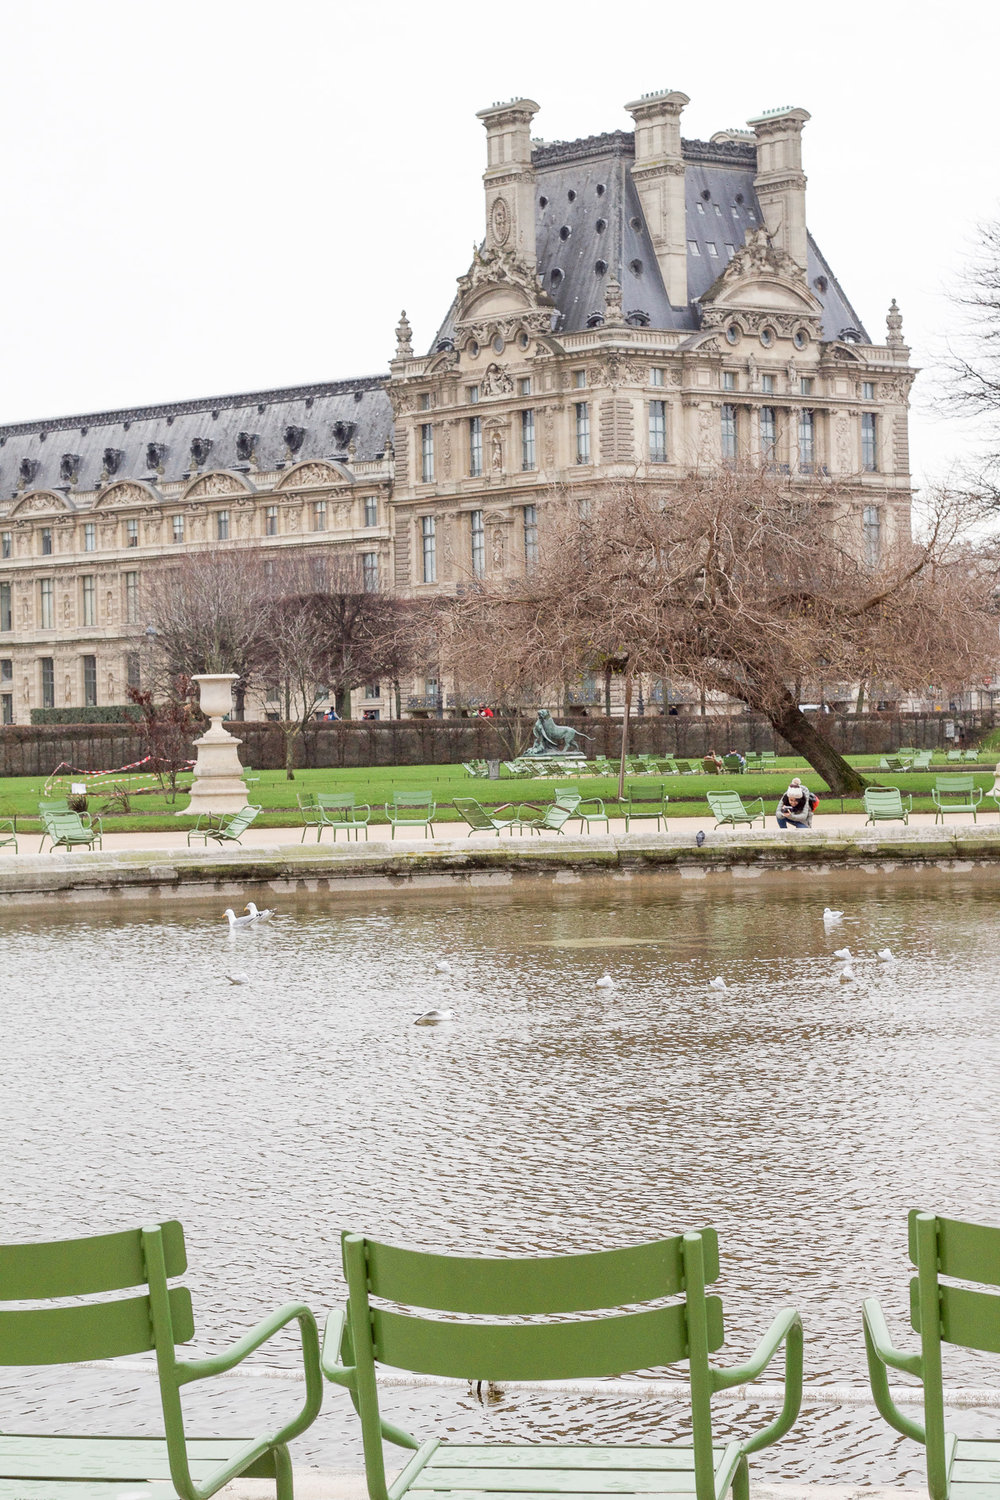 Tuileries  Gardens outside of the Louvre